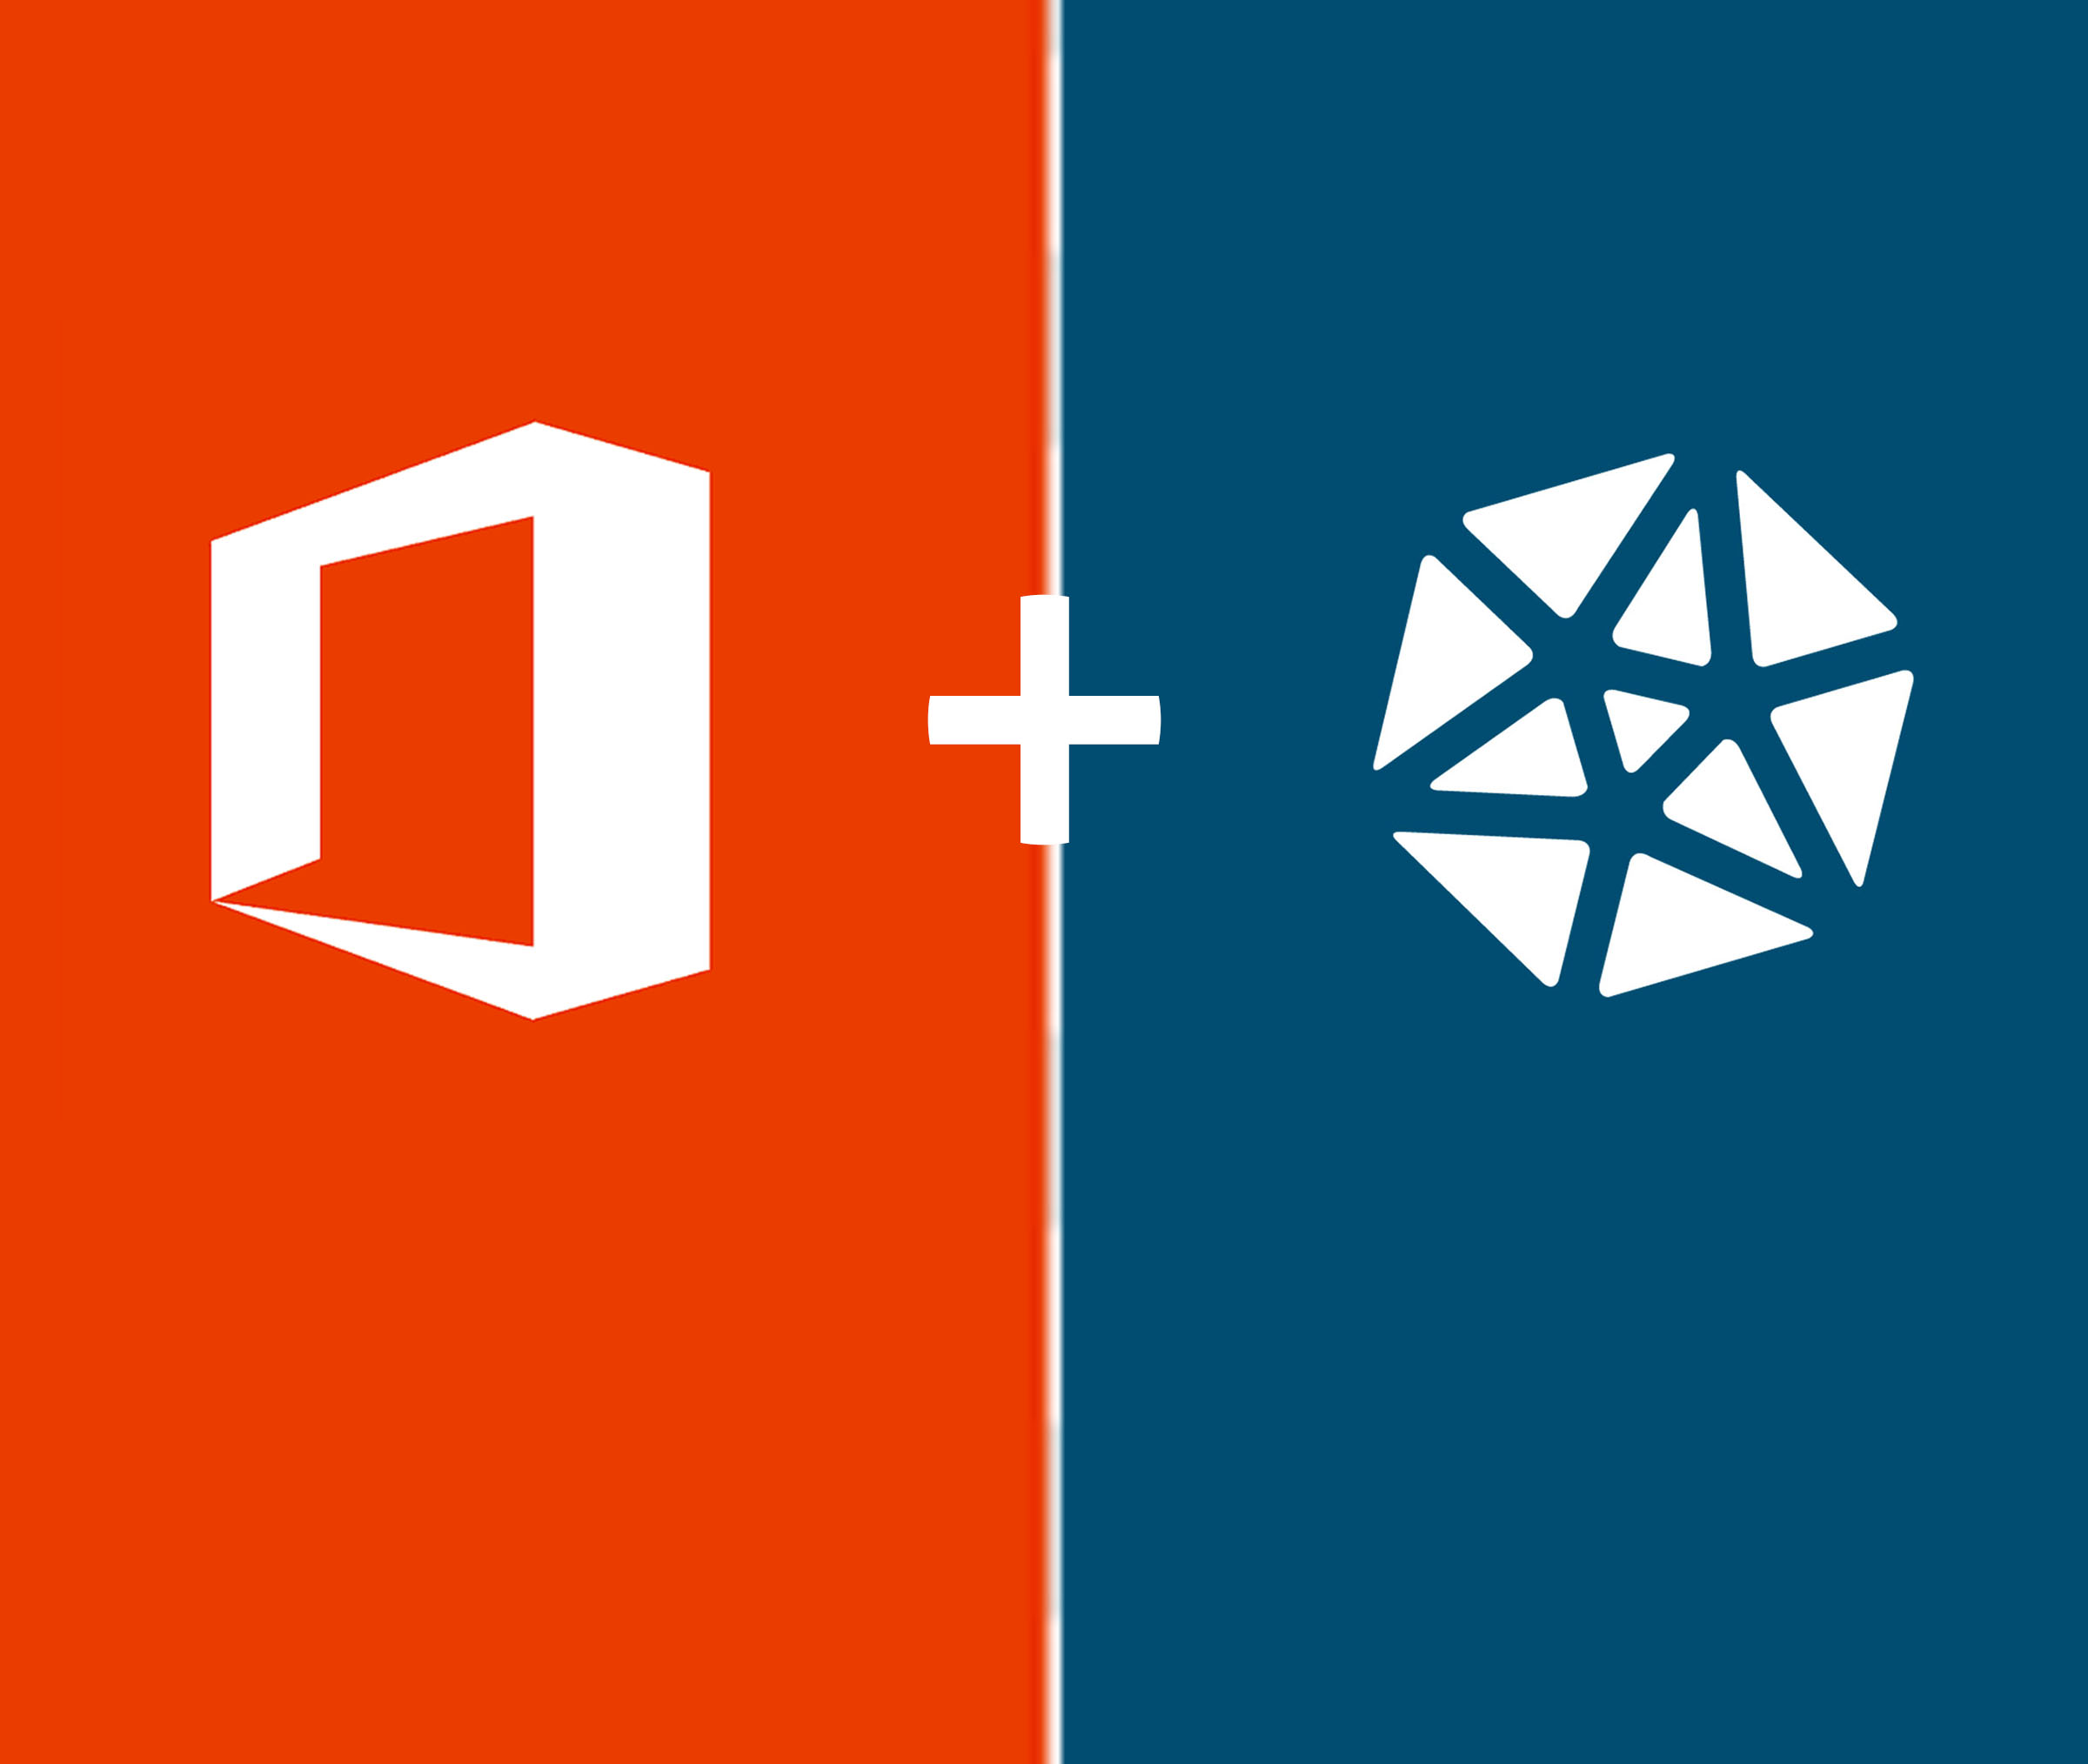 Achieving RM Compliance: Office 365 E1+ with Collabspace, or Office 365 E5 Standalone?